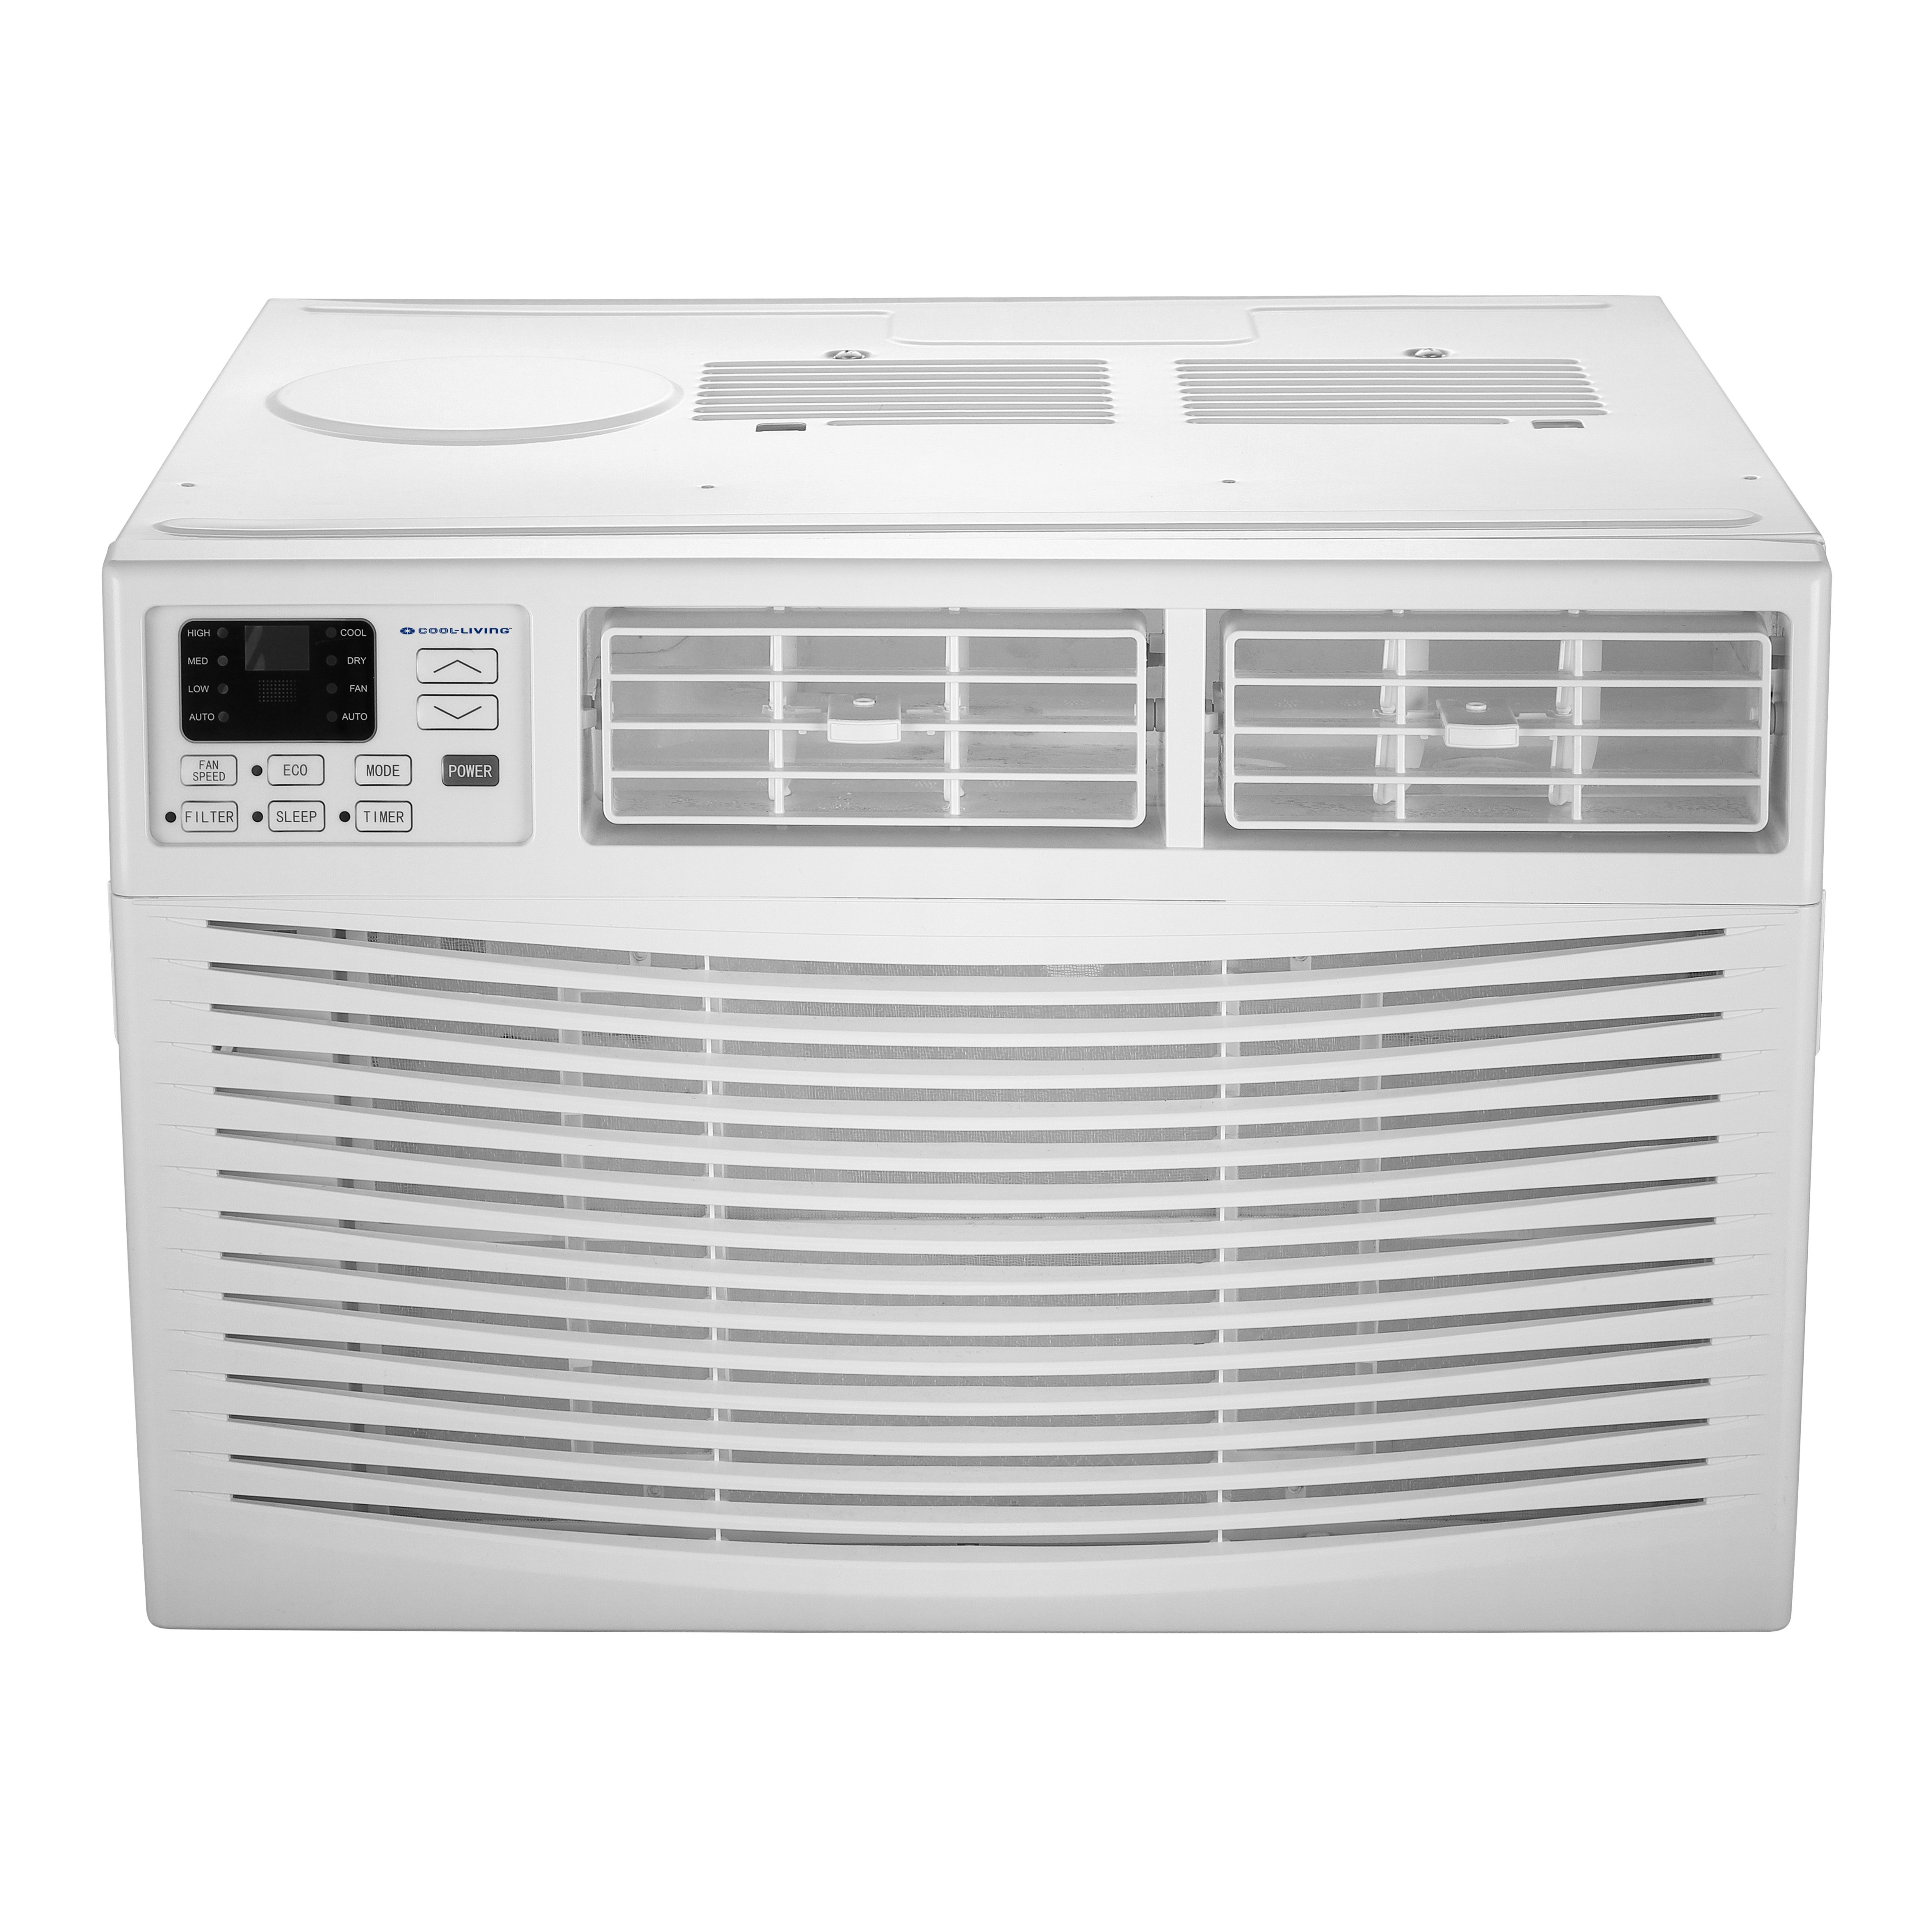 Cool-Living 6,000-BTU Window Air Conditioner with Digital Display and Remote, White